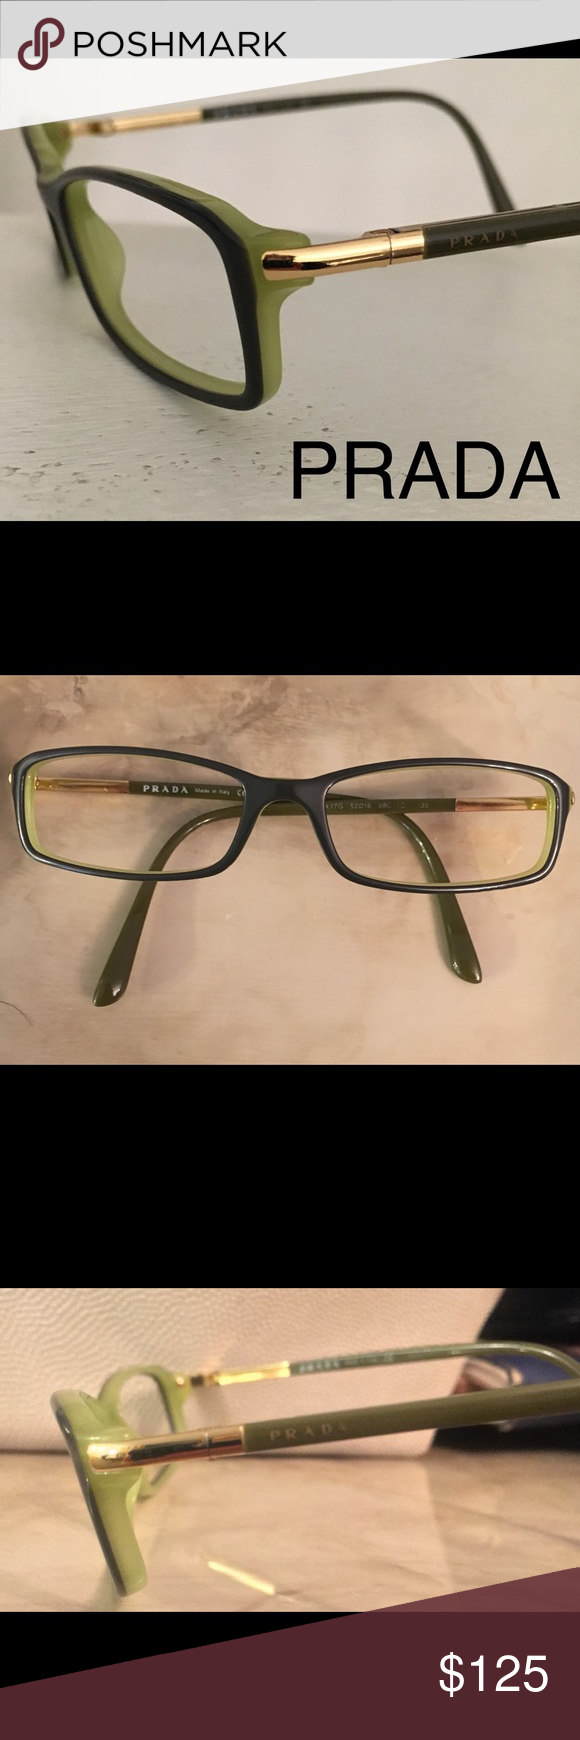 a617d73160b New Prada frames only New Prada glasses sunglasses frames only Beautiful  green acetate with gold contrast Made in Italy Prada Accessories Sunglasses